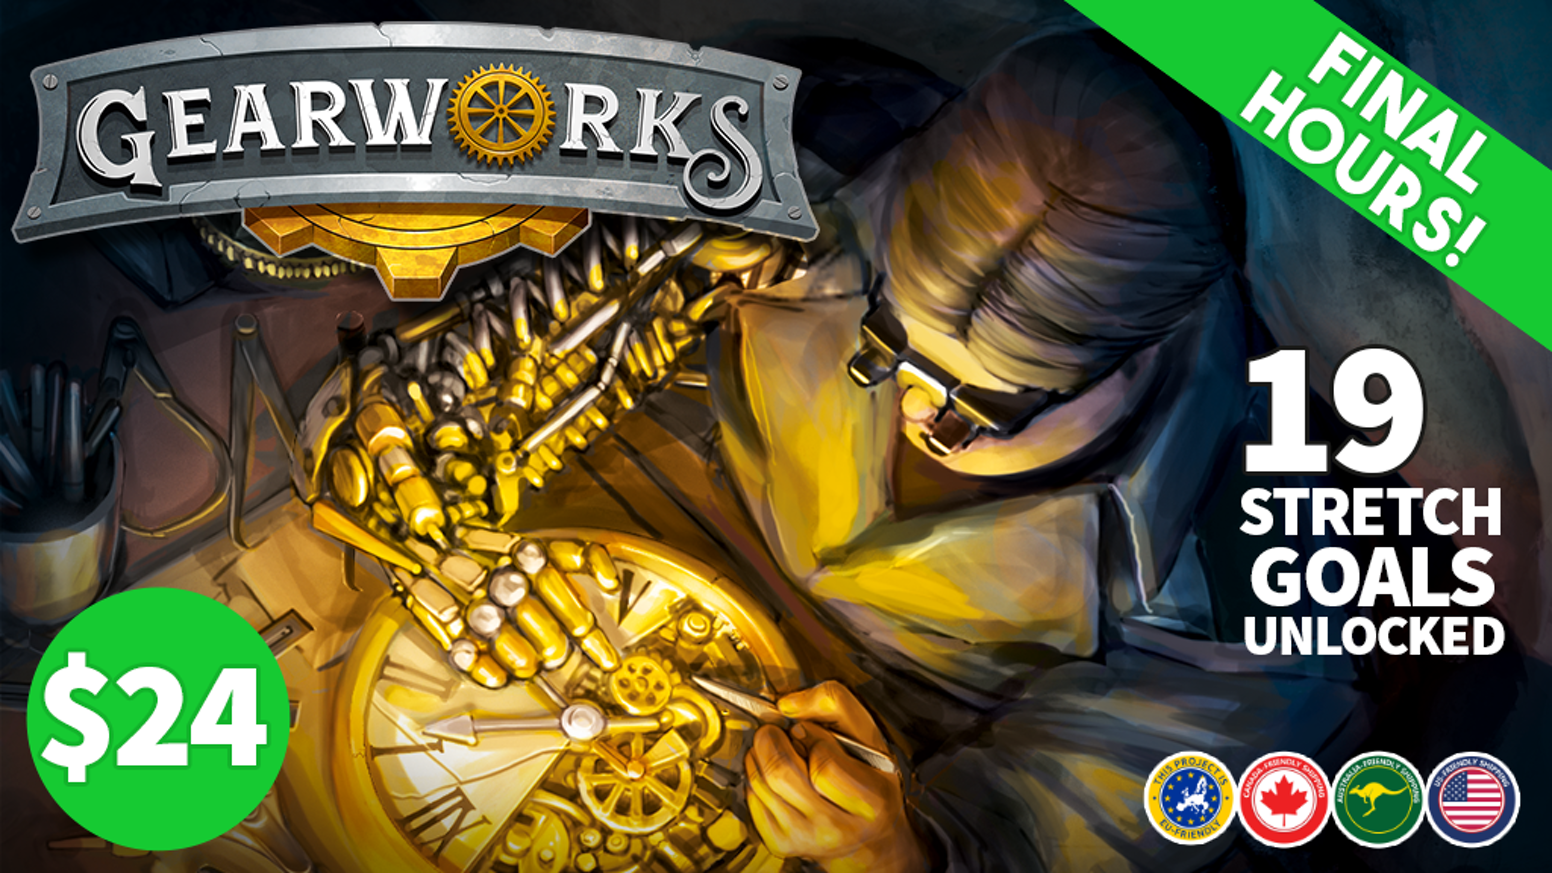 Sudoku meets steampunk in a visually stunning card game for 1-4 players.